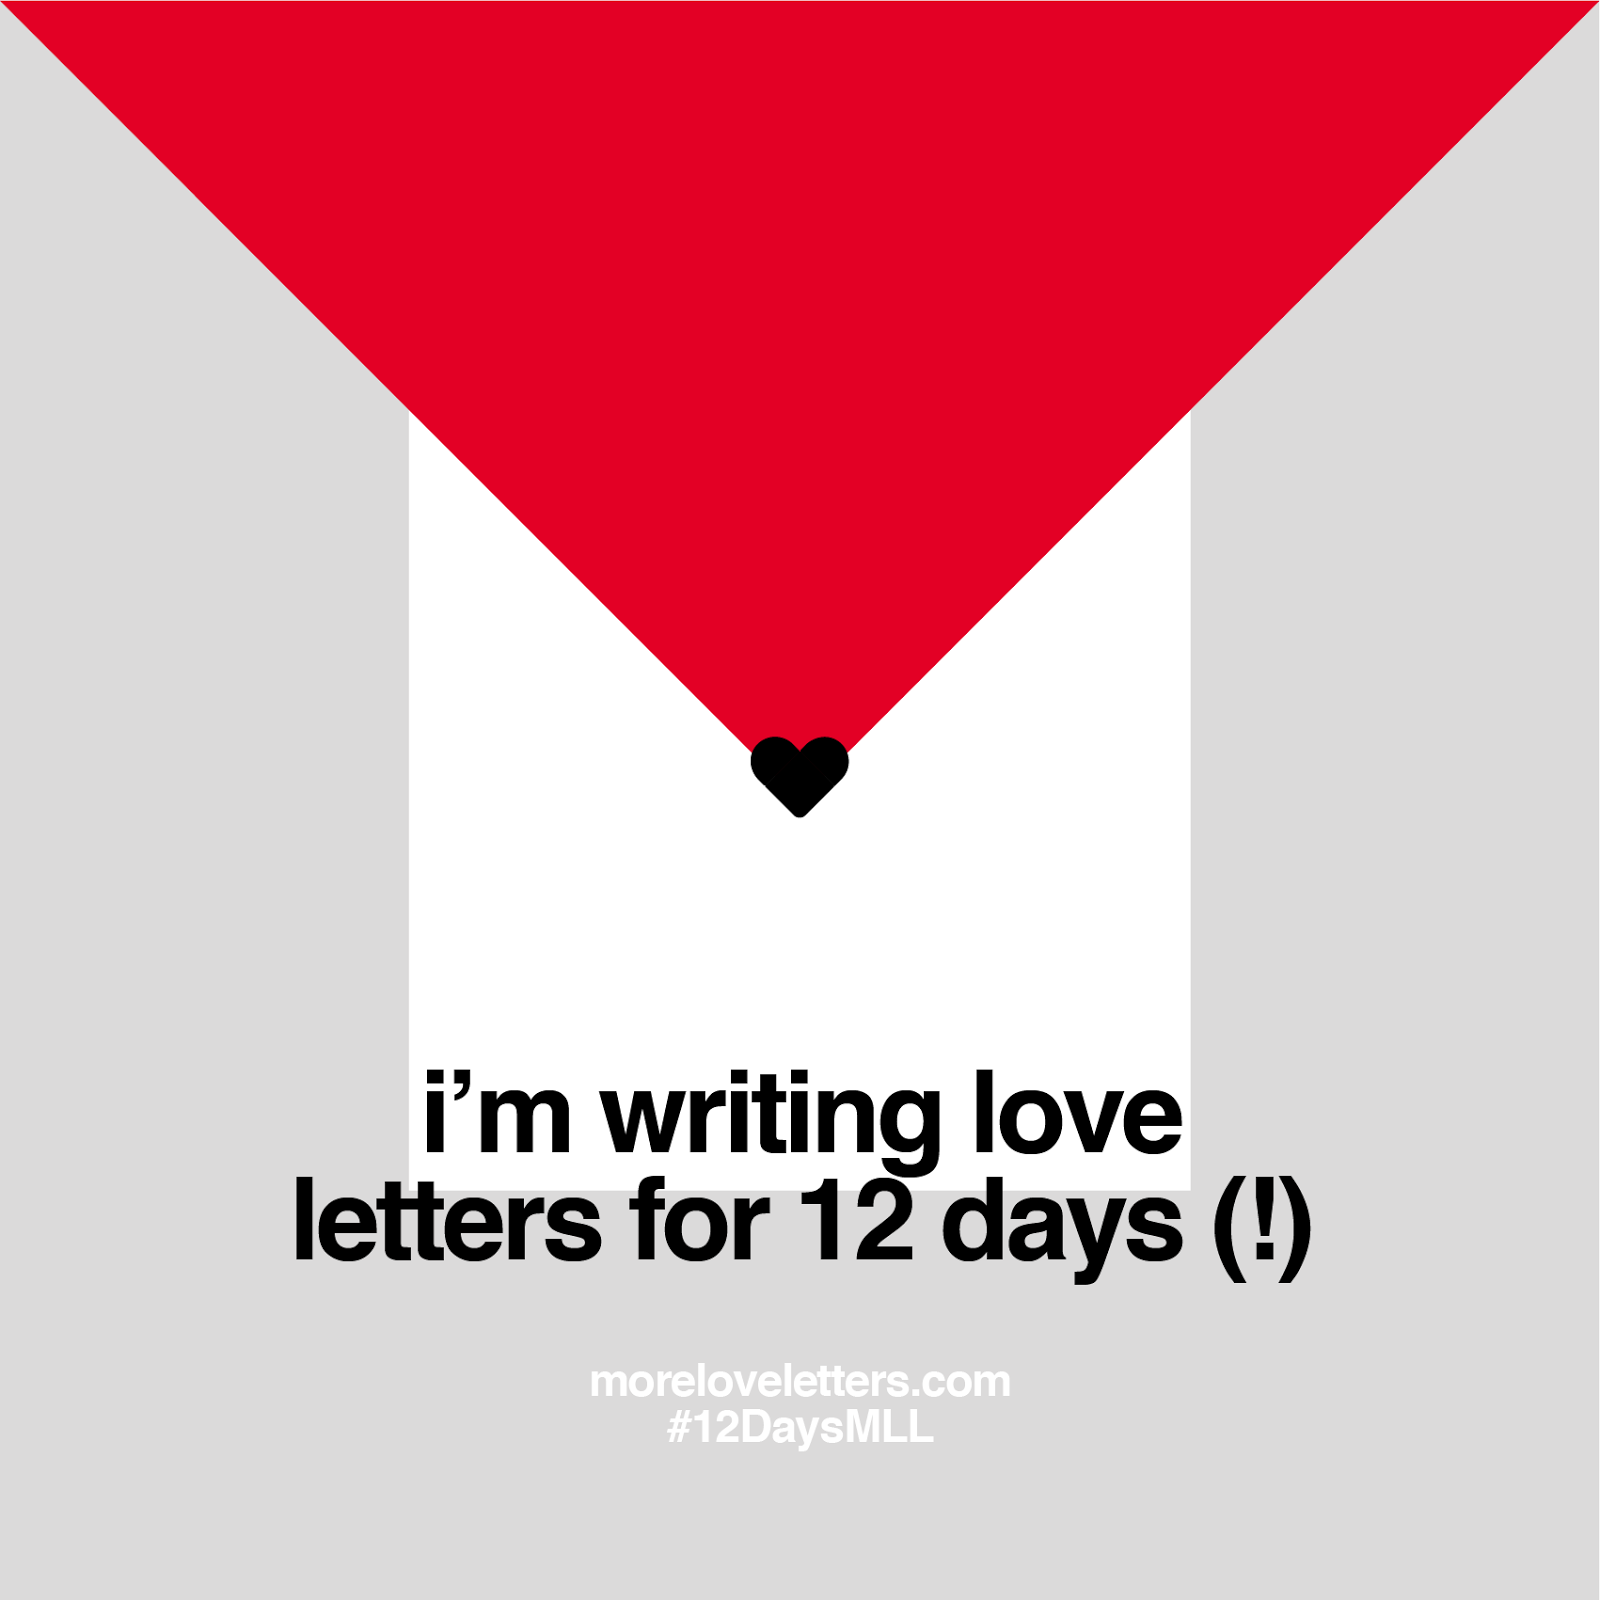 more love letters 2 more letters 12 day campaign 576